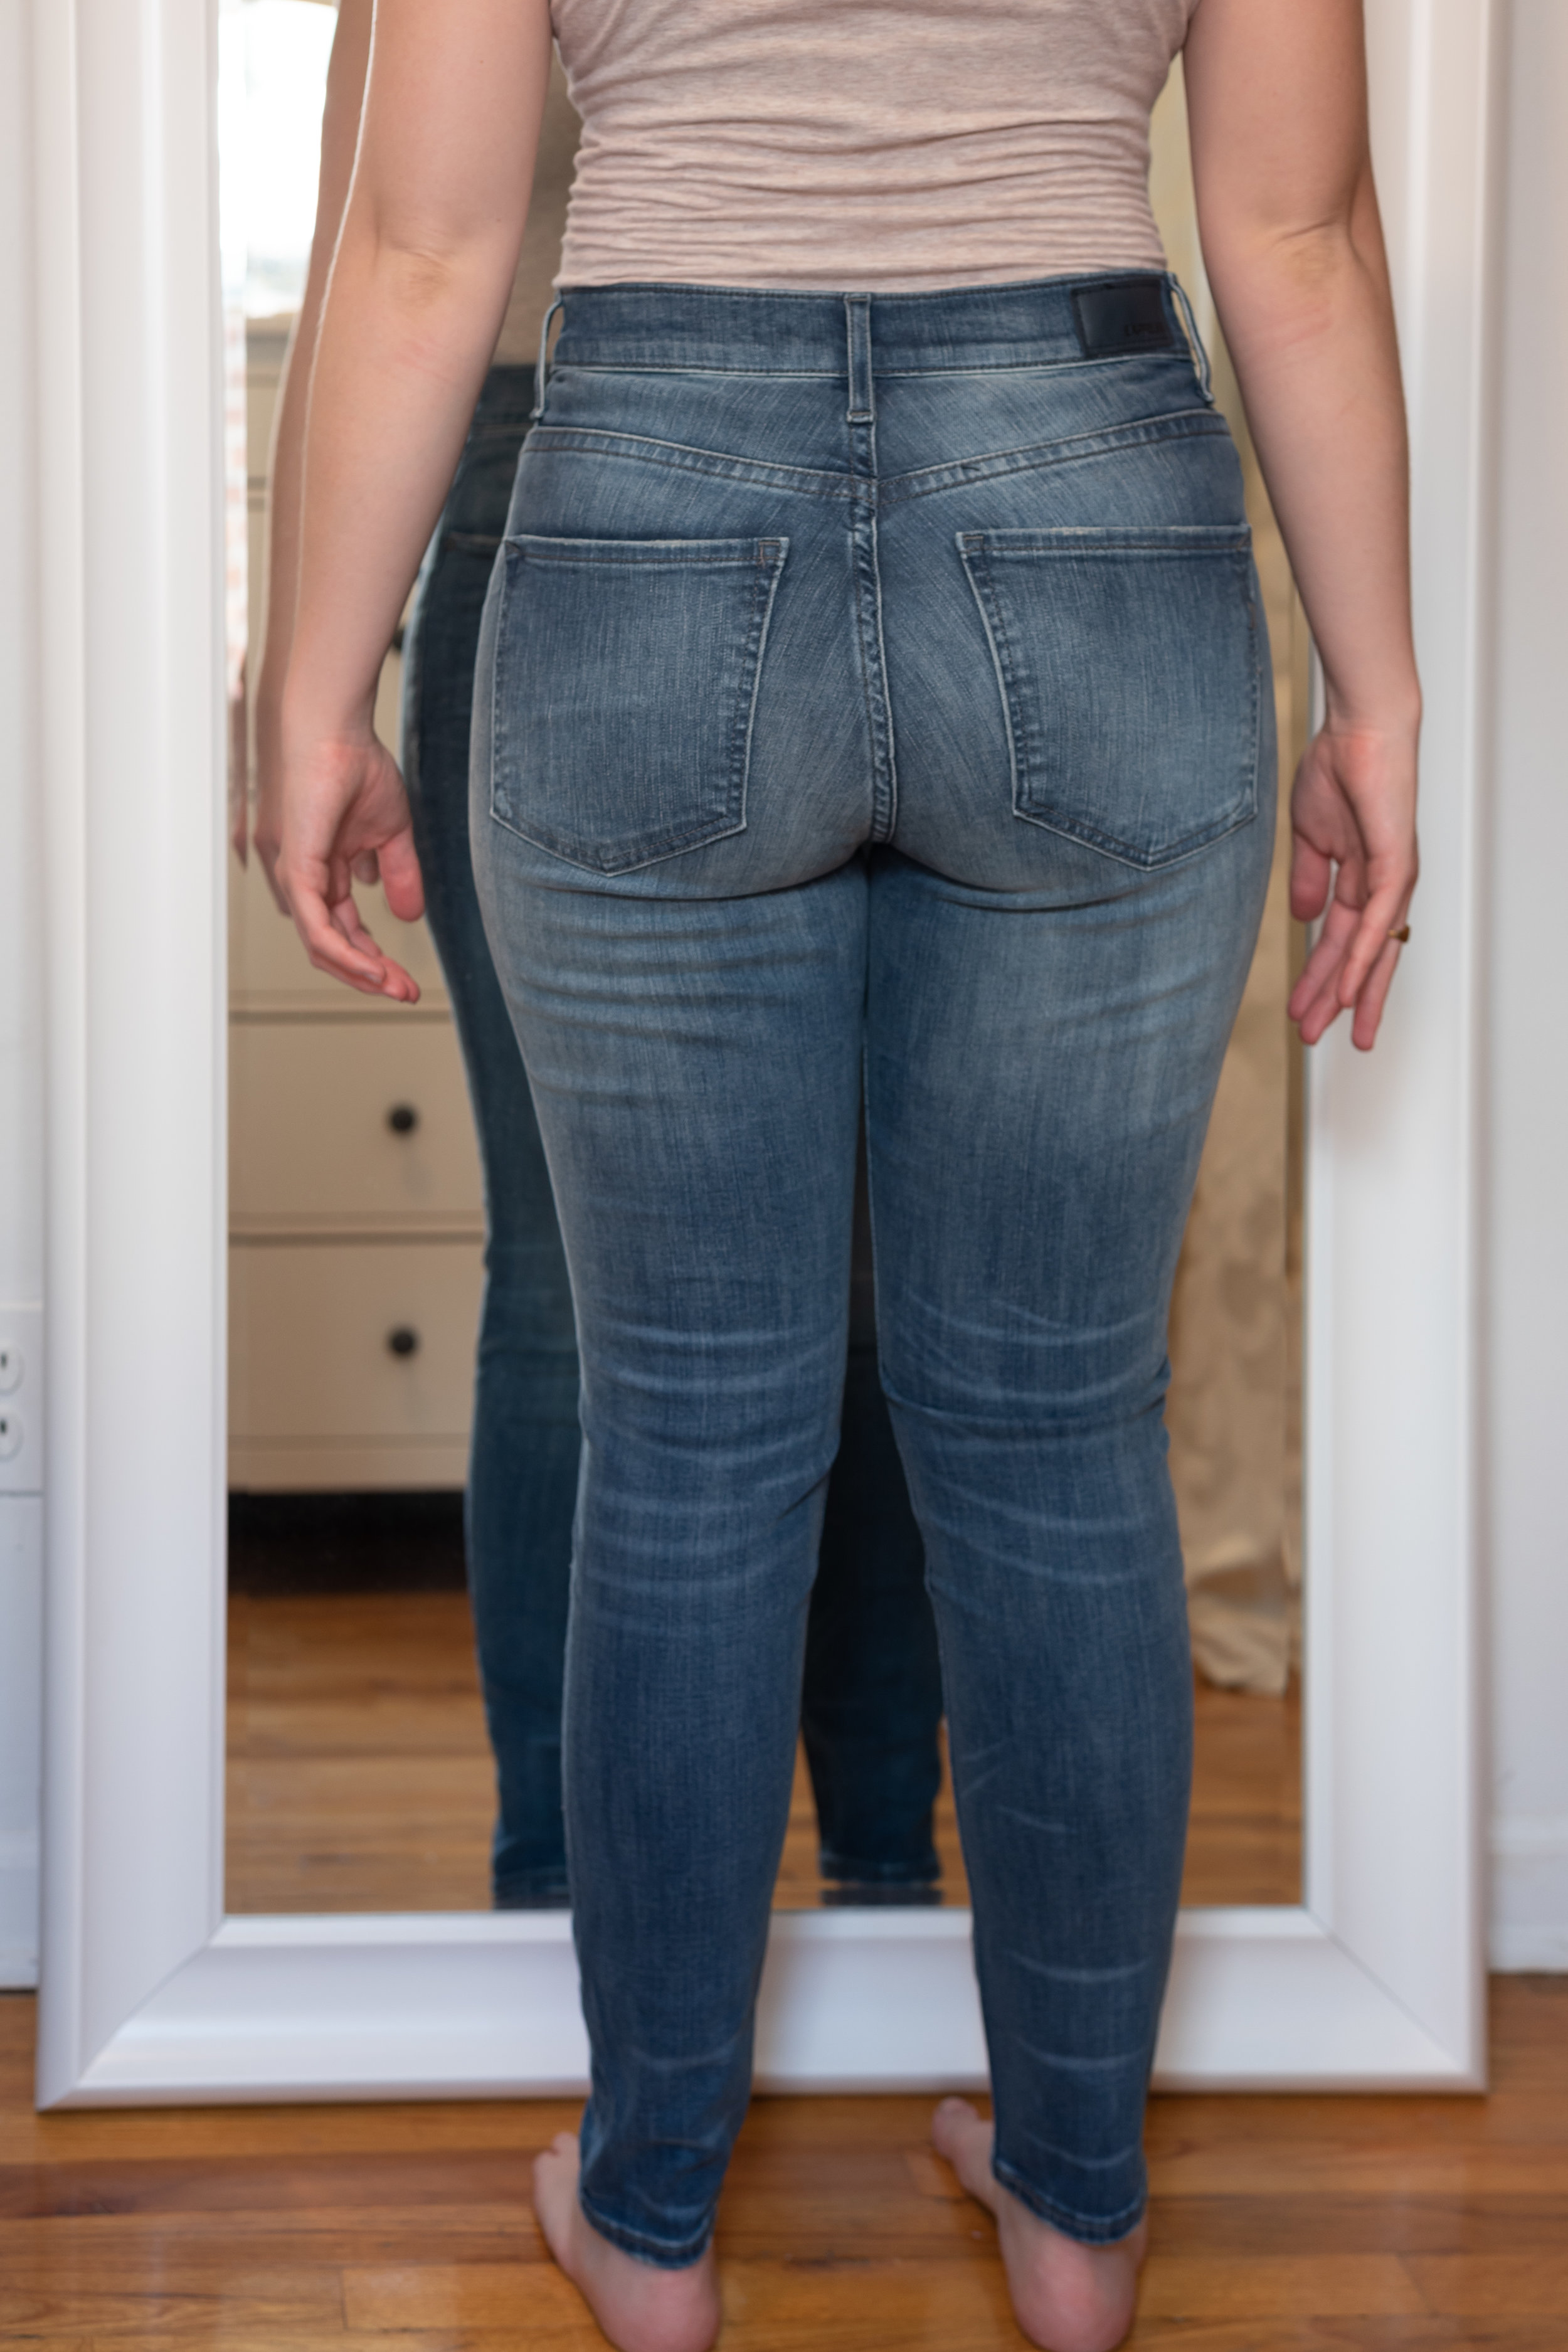 Express High Waisted Denim Perfect Curves Jean Legging- 6 Short